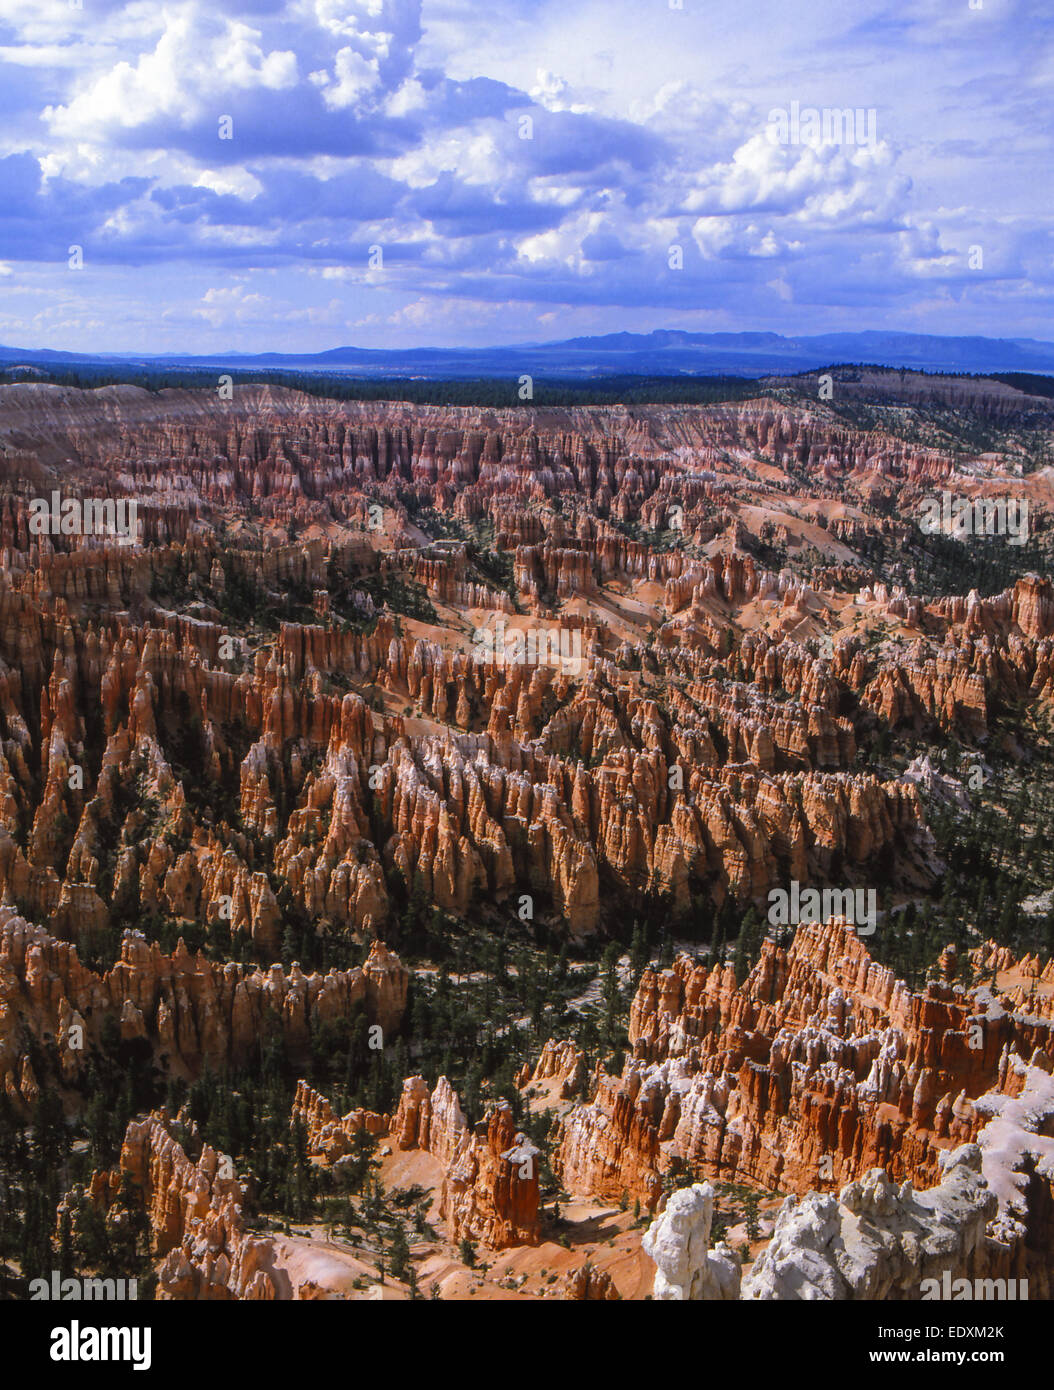 Amerika, USA, Landschaft im Bryce Nationalpark, America, landscape in Bryce National Park, Bryce National Park, - Stock Image